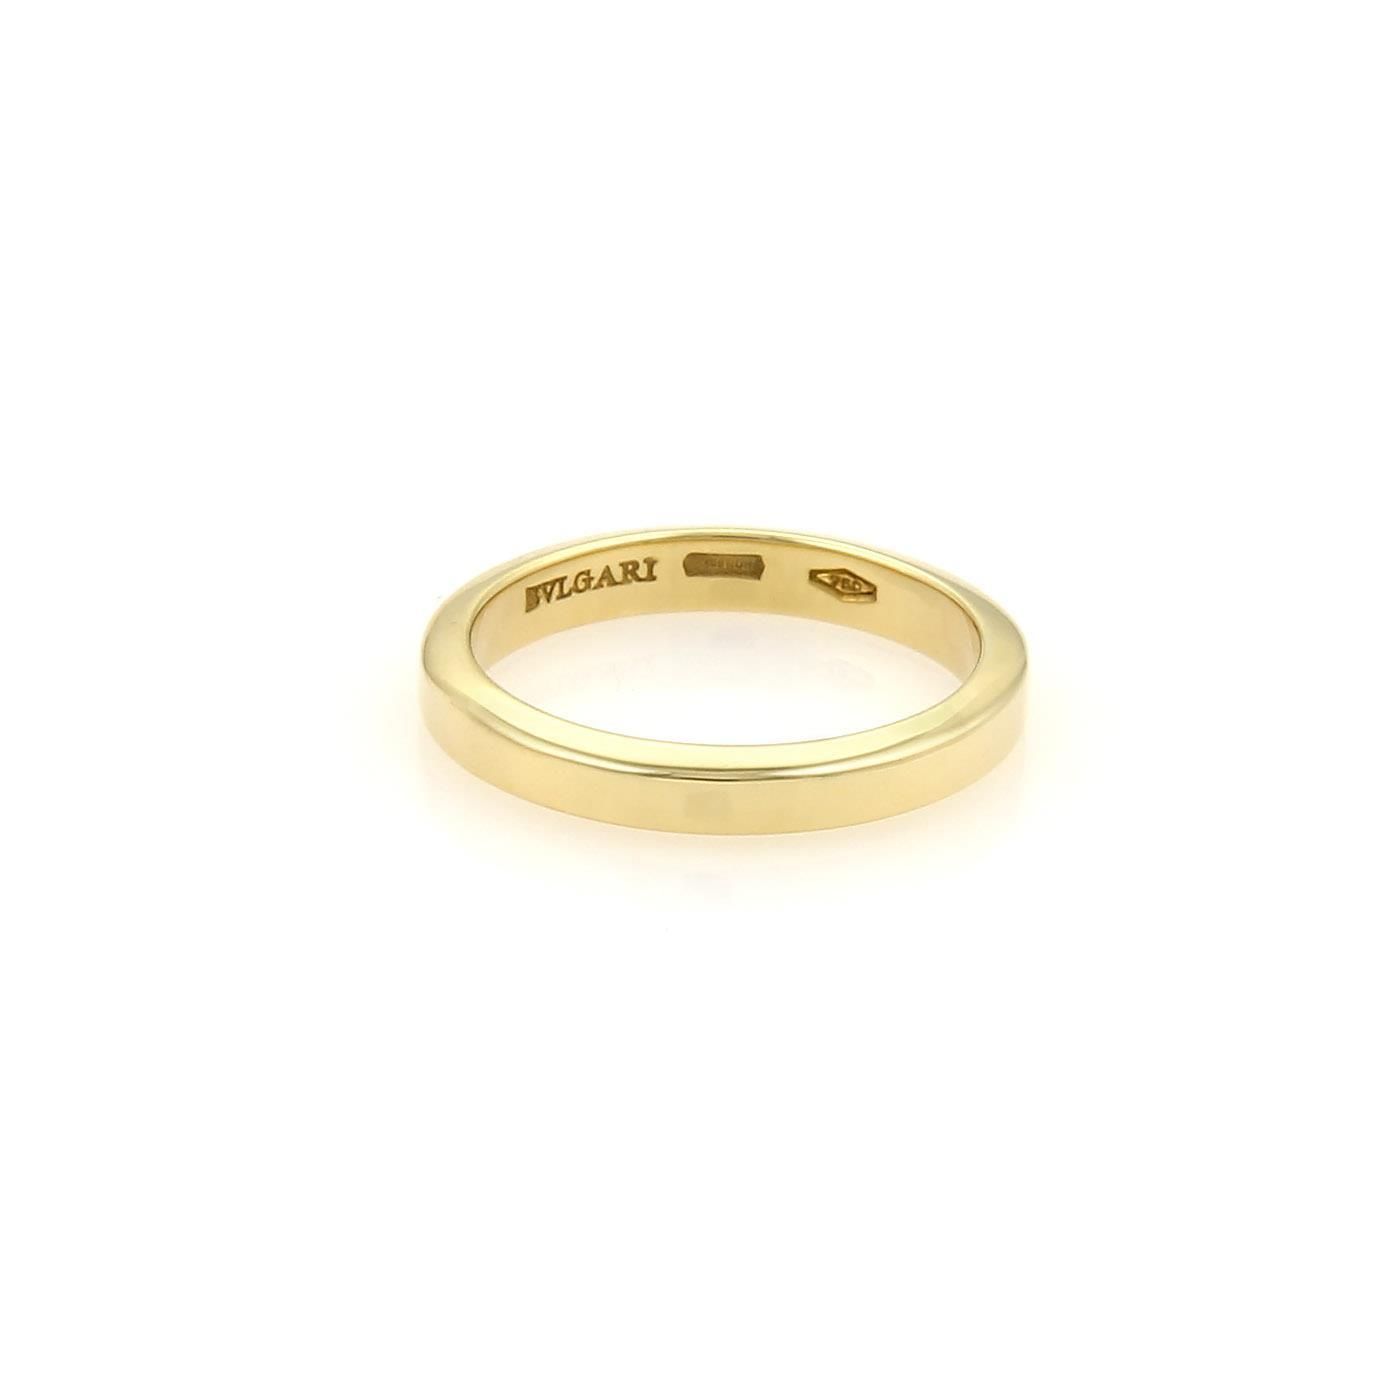 """""Bulgar 18K Yellow Gold Flat Plain Wedding Band Ring Size 5.75"""""" 969100"